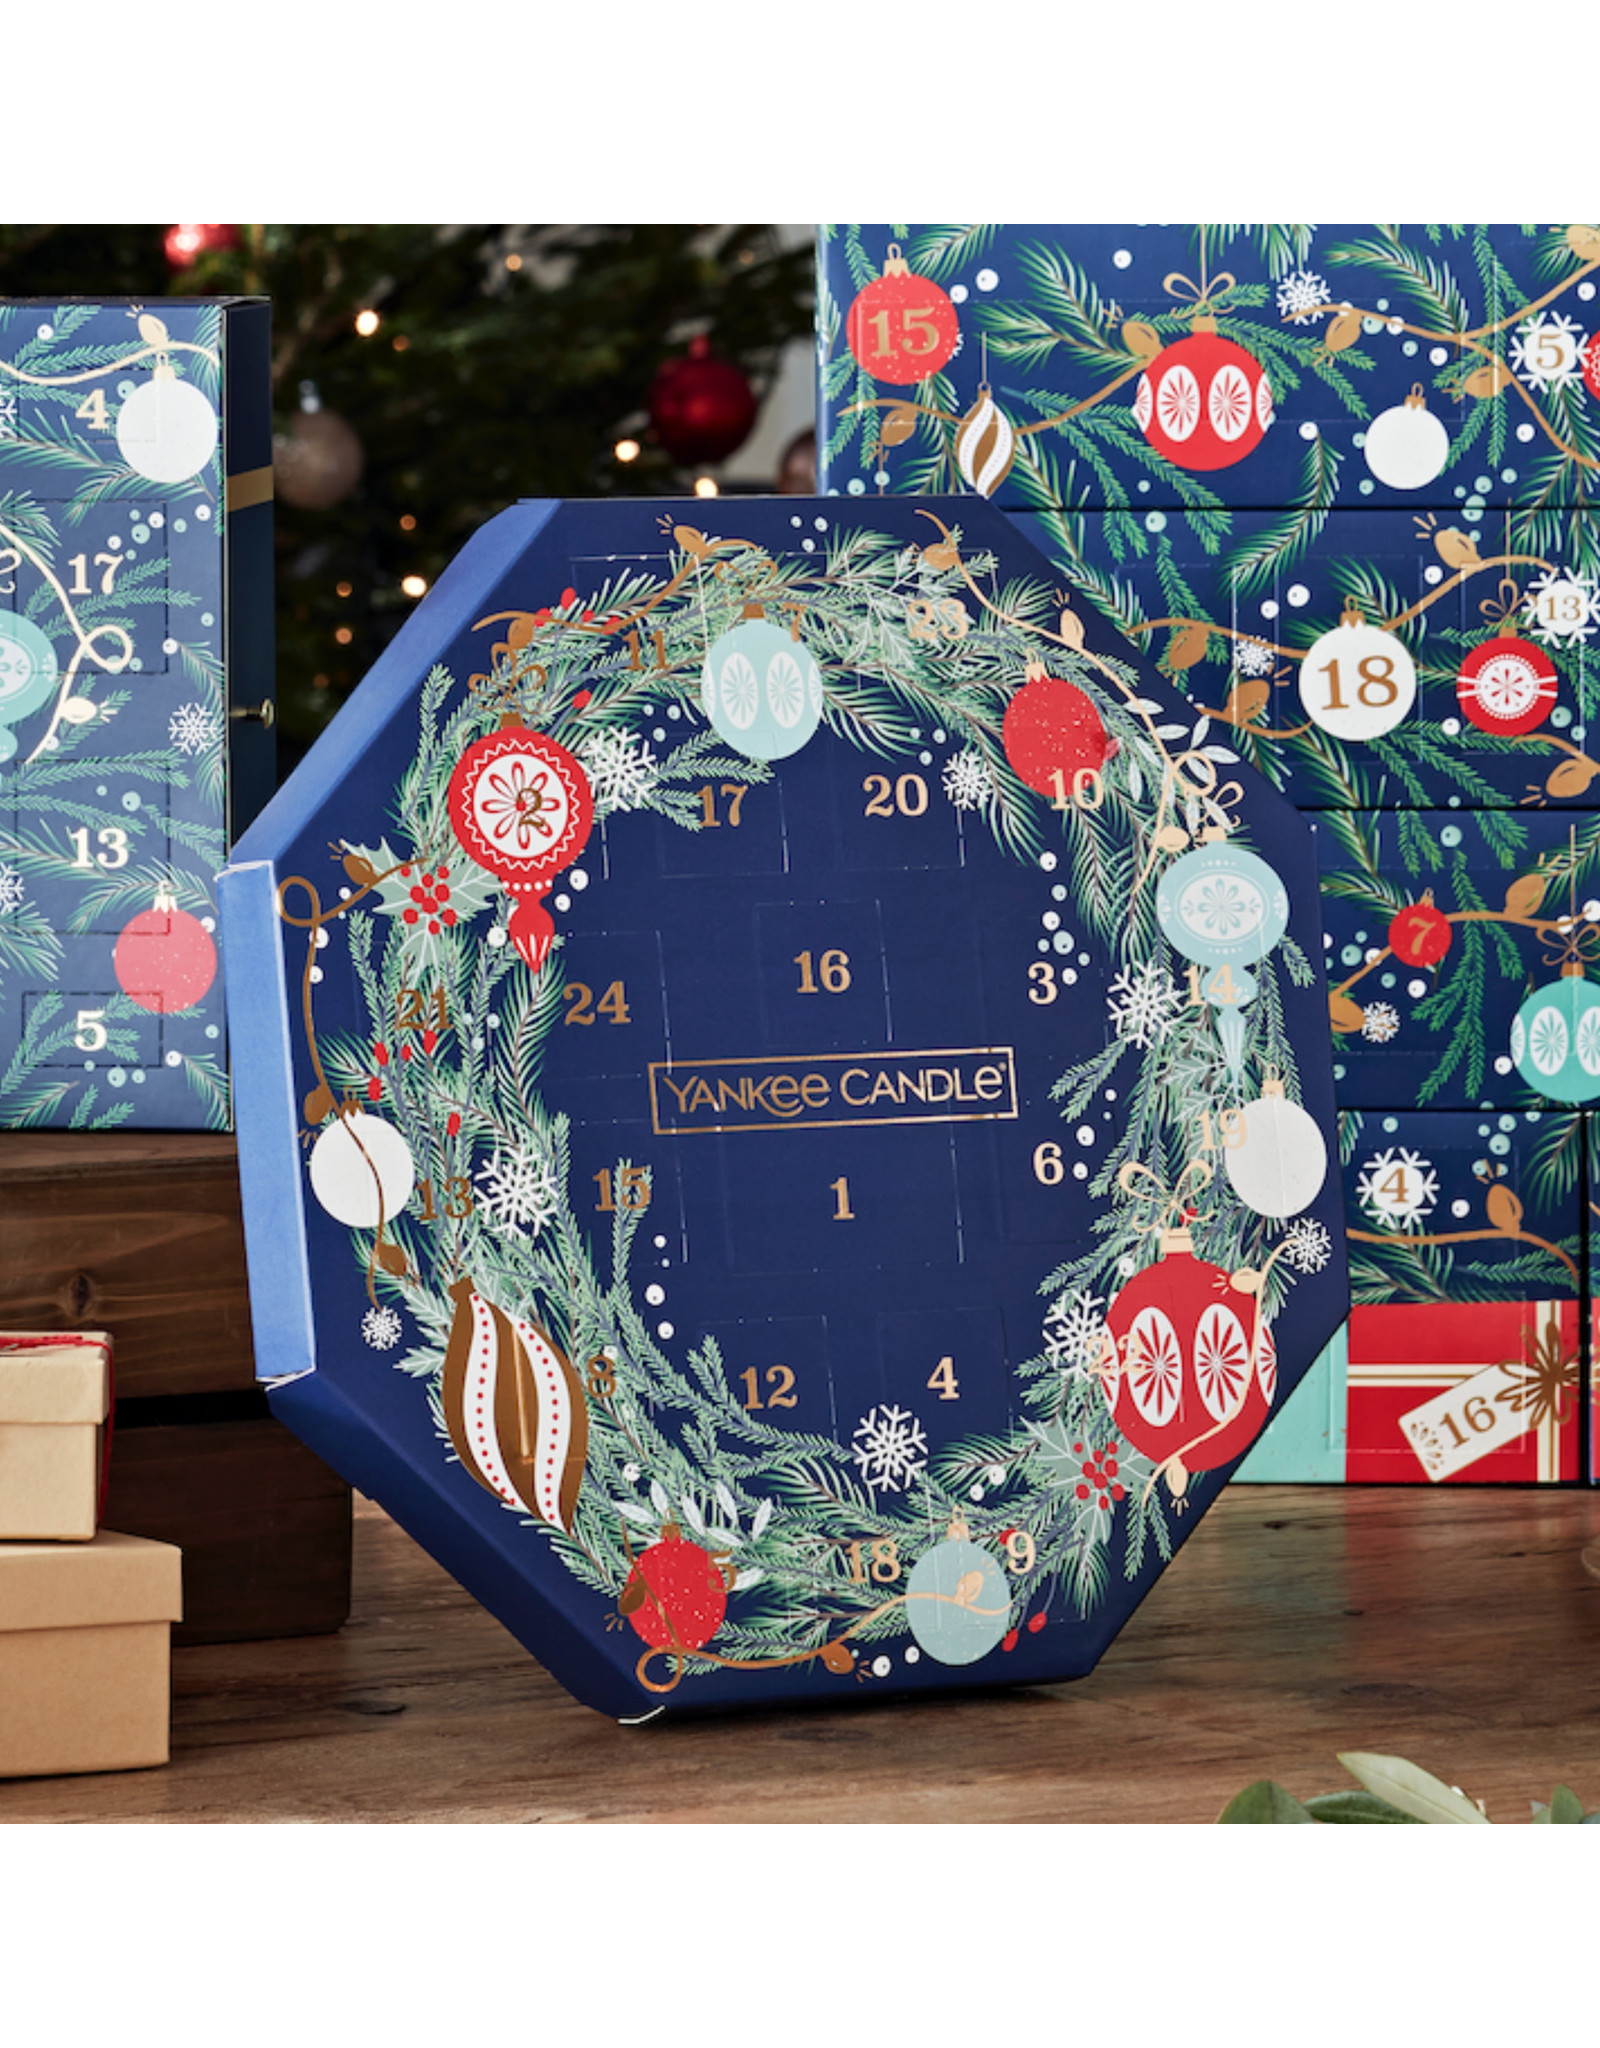 Yankee Candle Countdown to Christmas - Advent Calendar